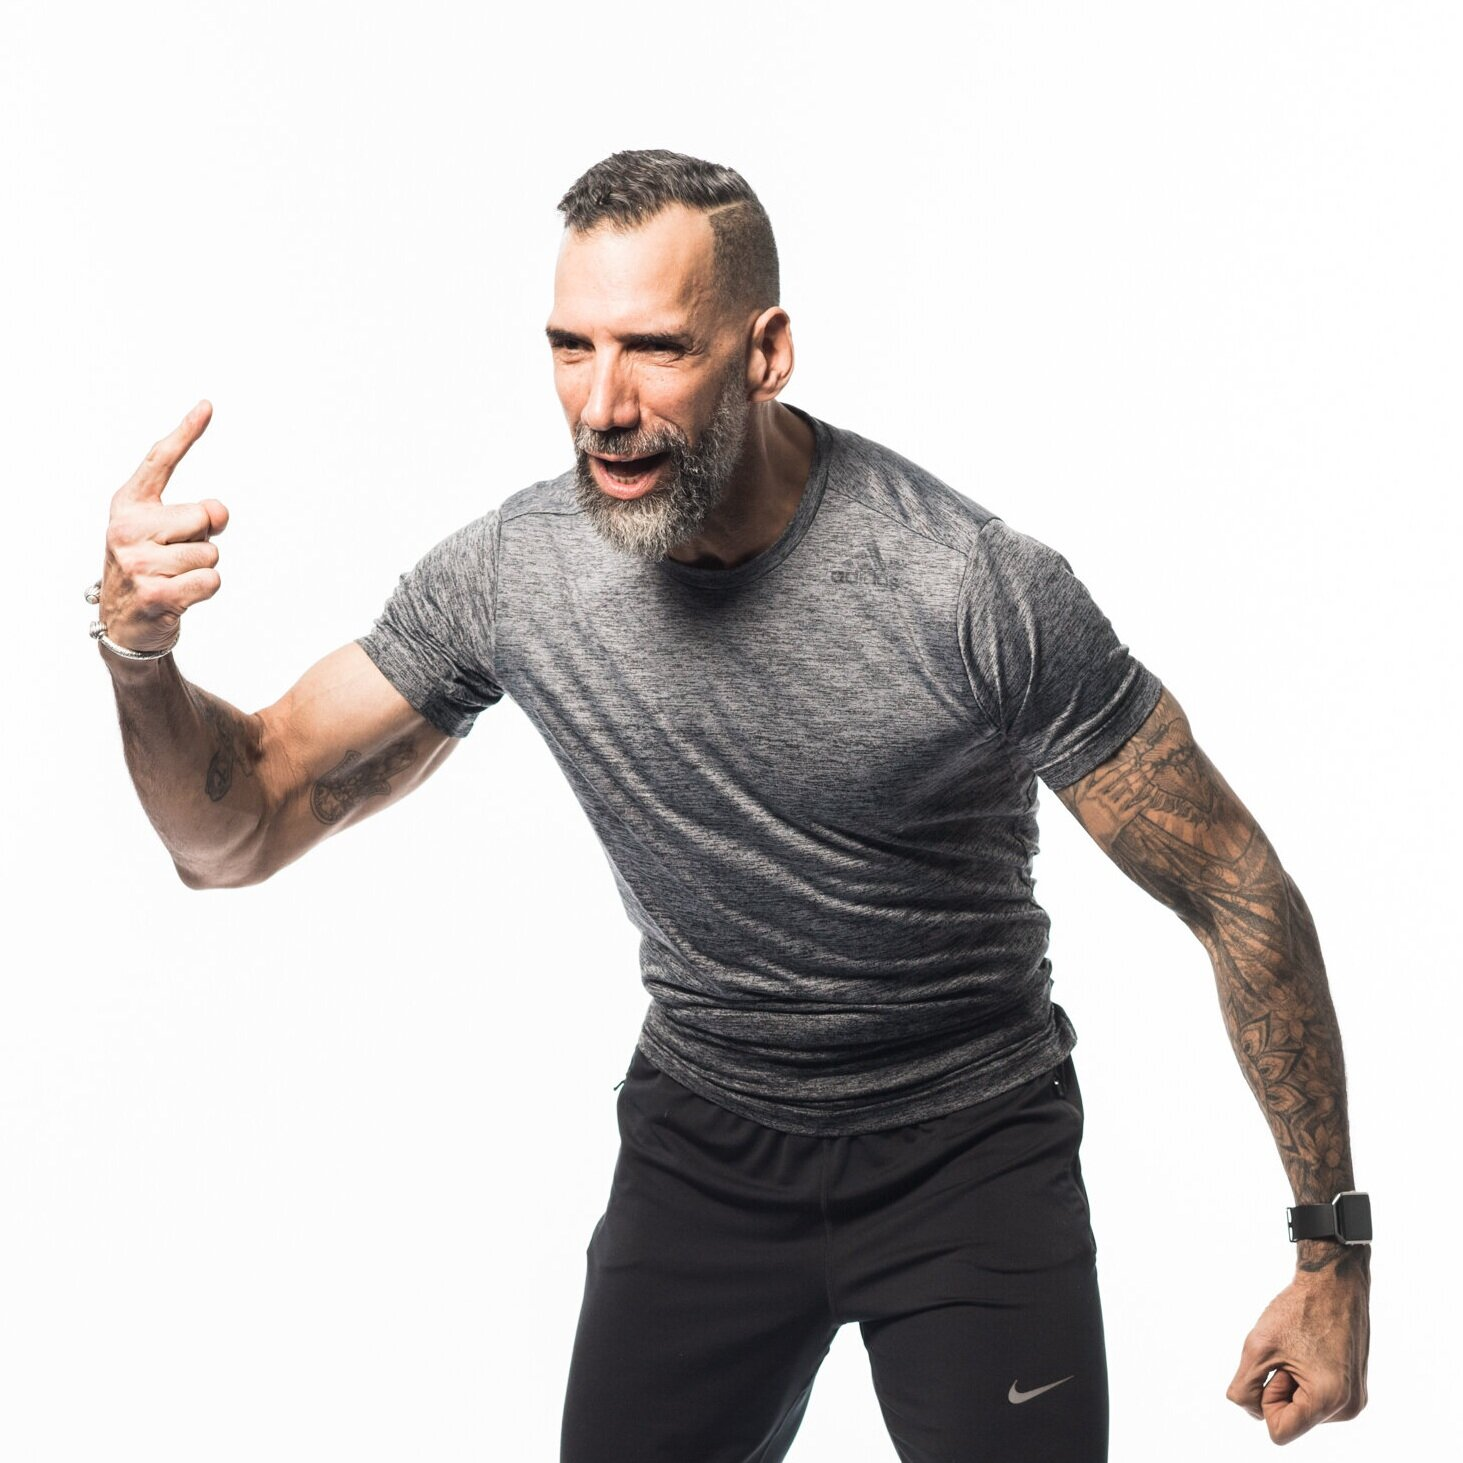 Bruce Waithe   Robert has been a strength and conditions coach for 10 years specializing in high end performance, injury prevention and rehab. He has a passion for optimizing the health and wellness of his clients. Growing up he was an avid Football and Rugby player.